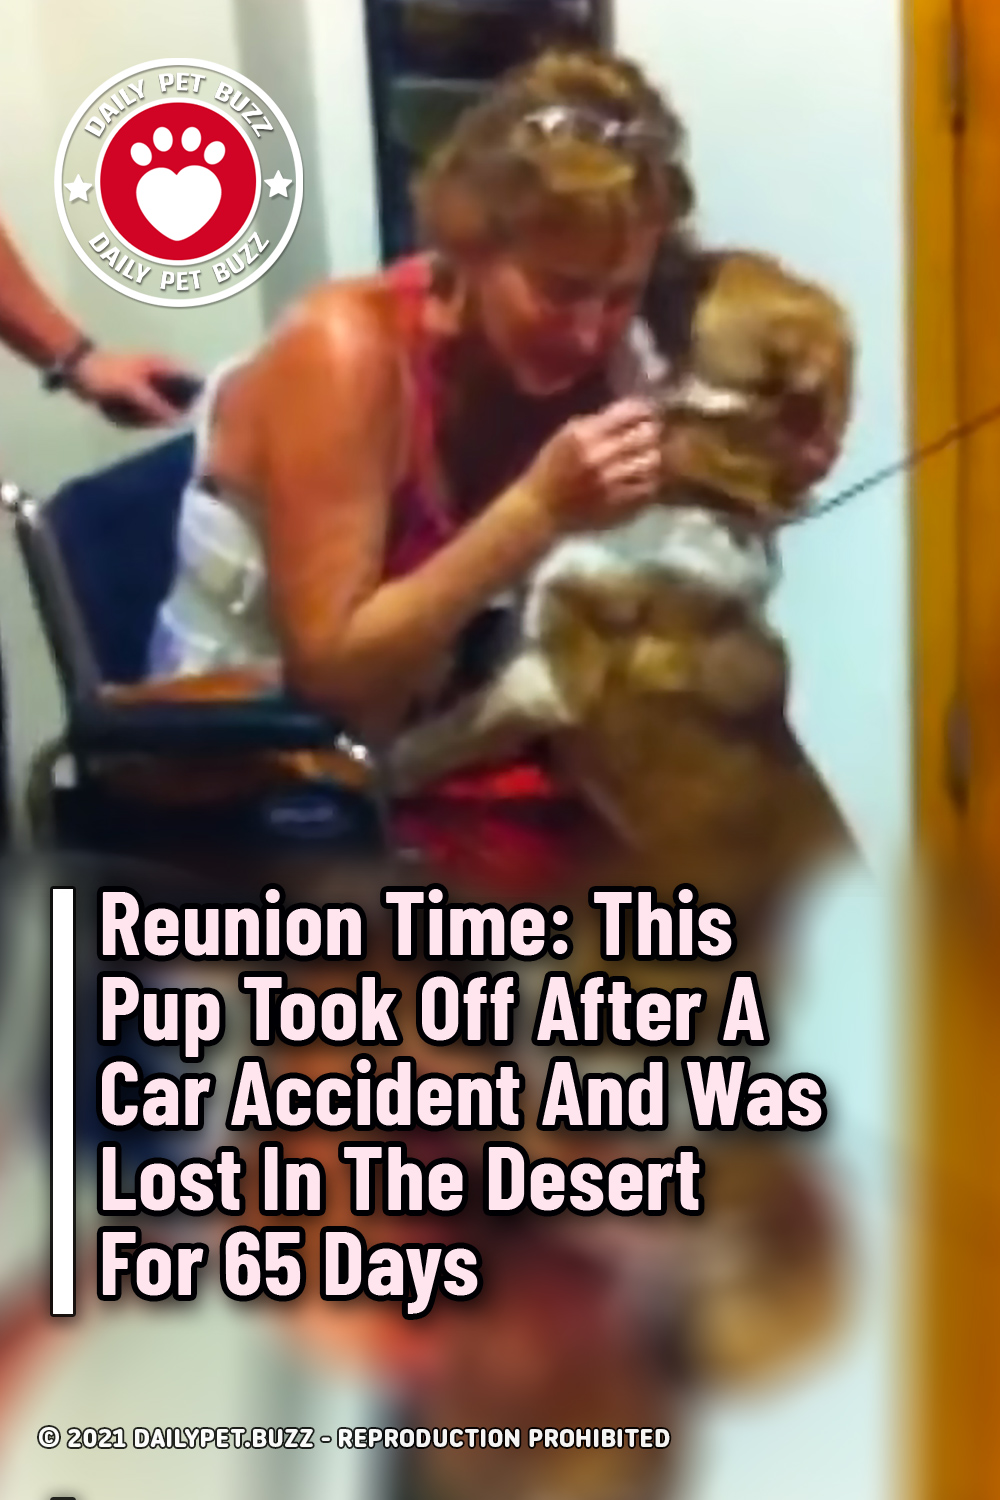 Reunion Time: This Pup Took Off After A Car Accident And Was Lost In The Desert For 65 Days